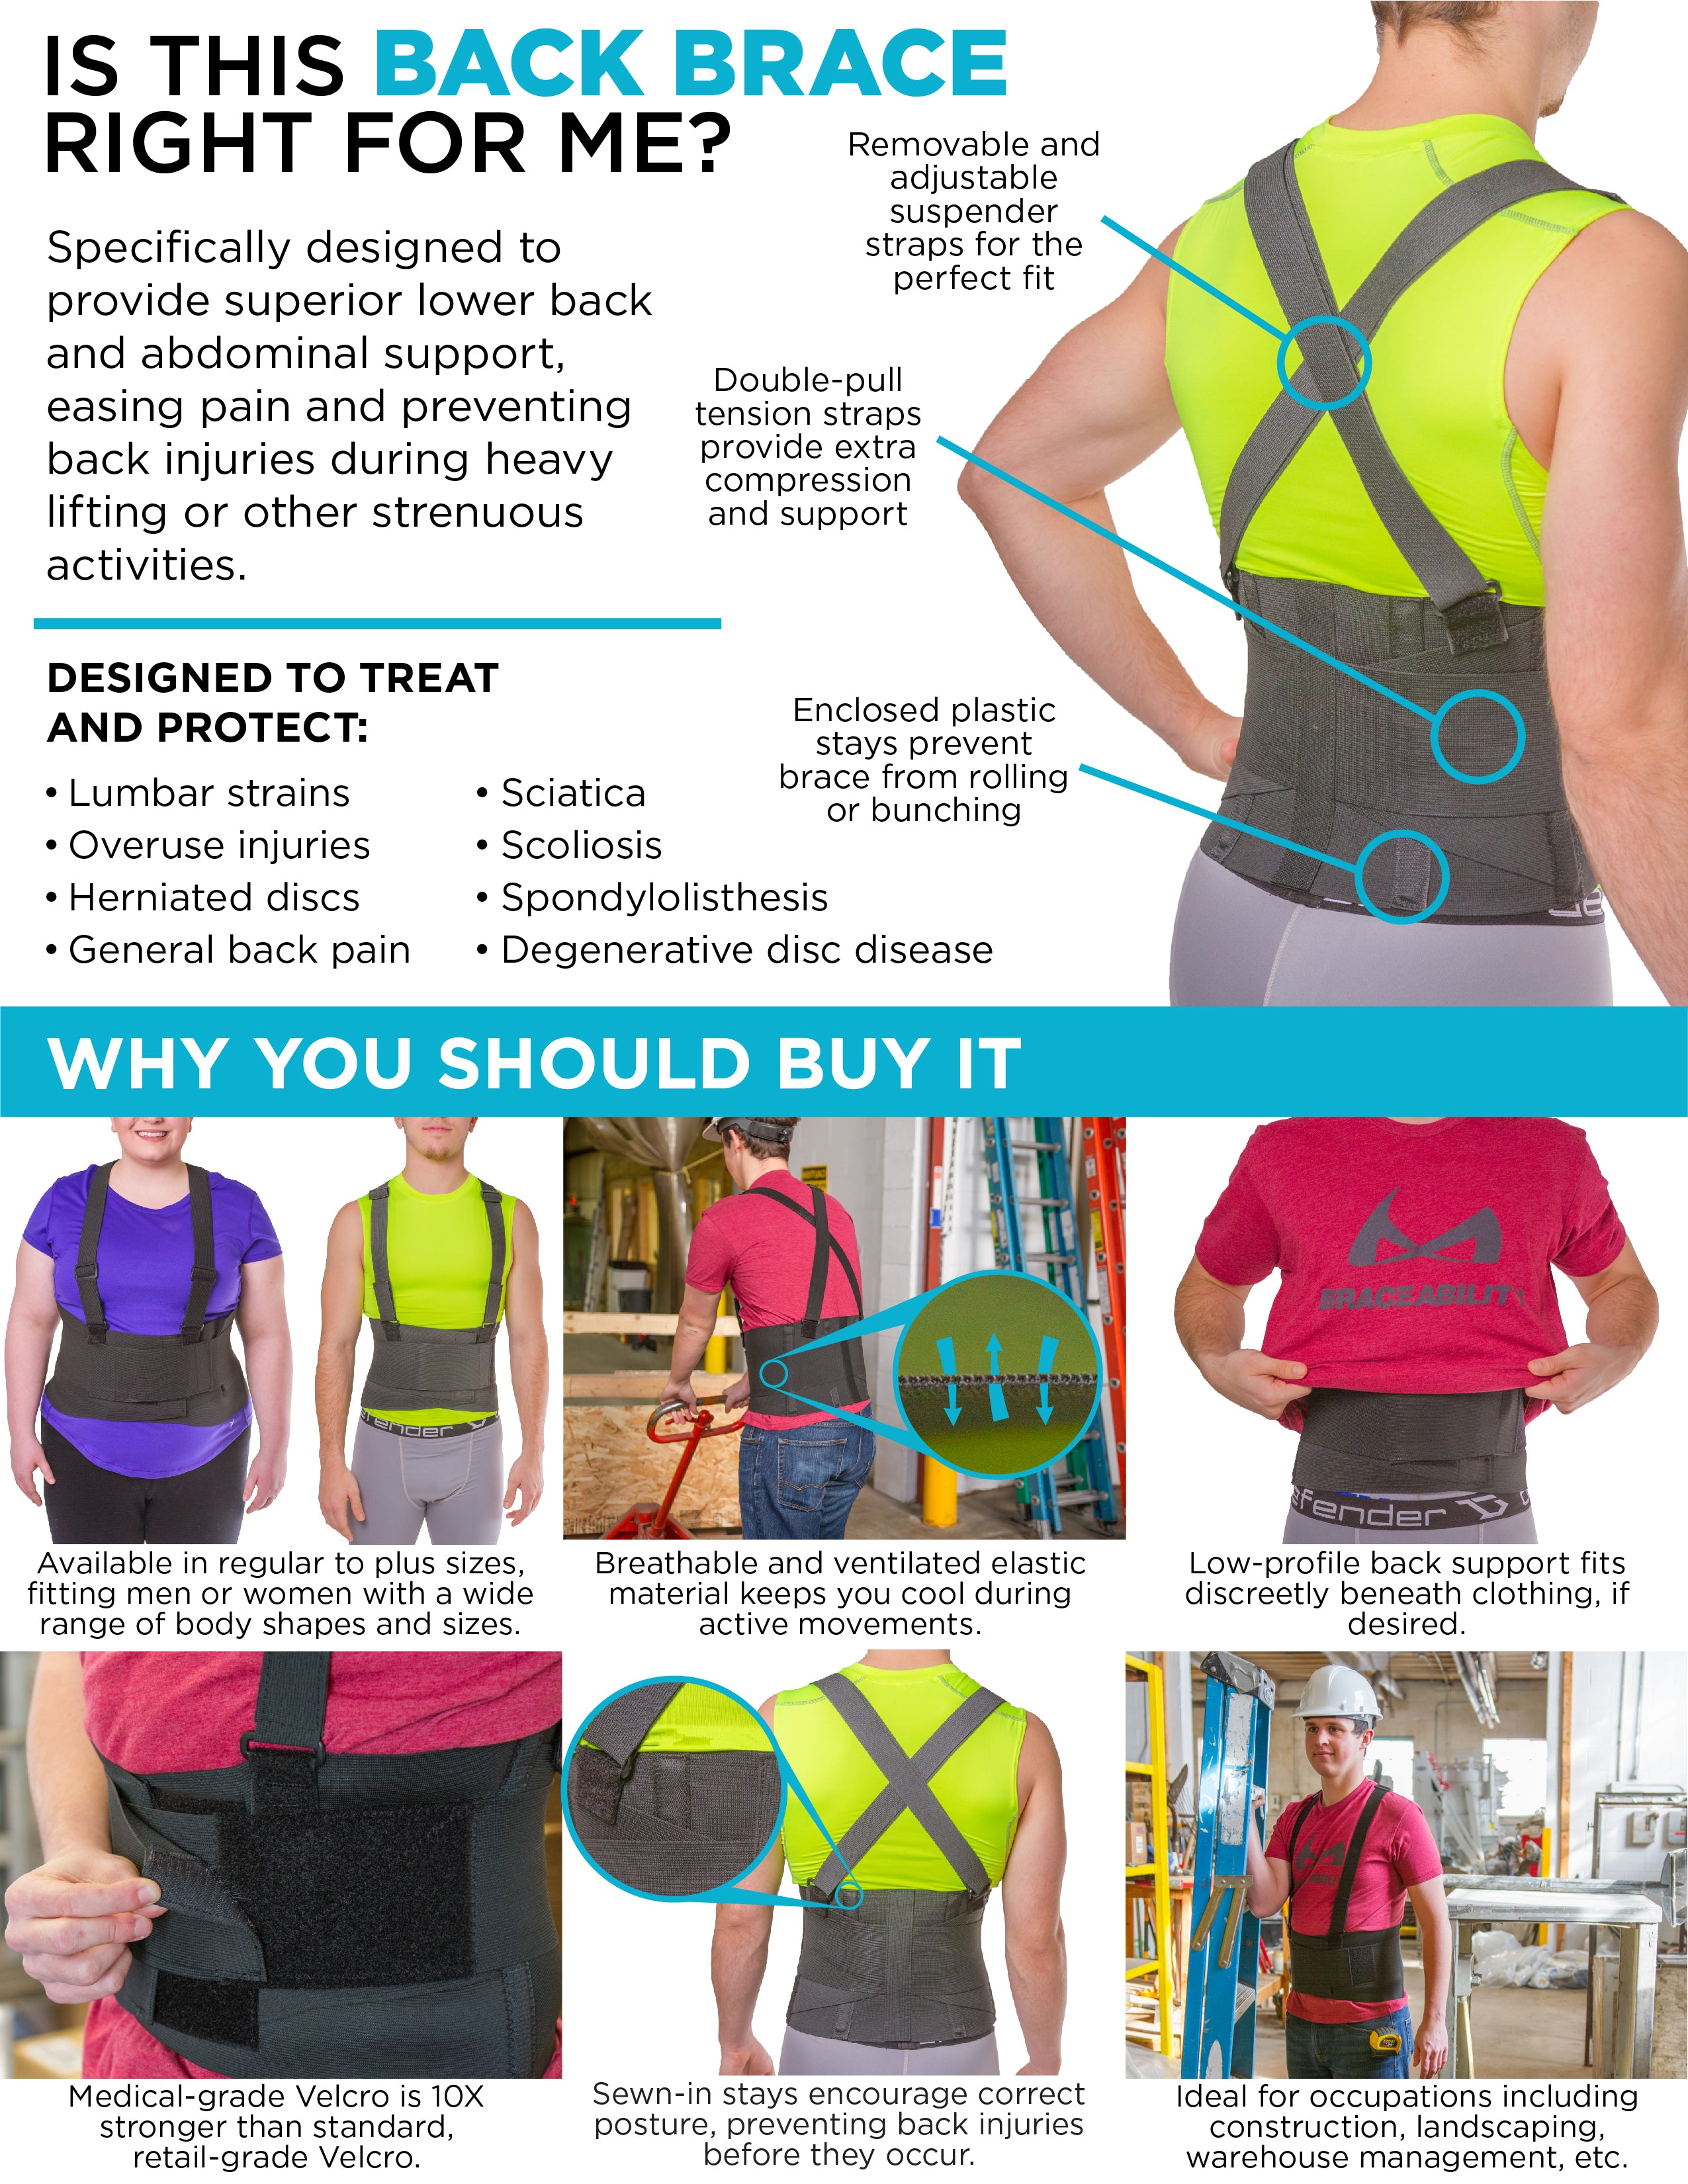 enhanced content with extra photos on how the industrial back brace works